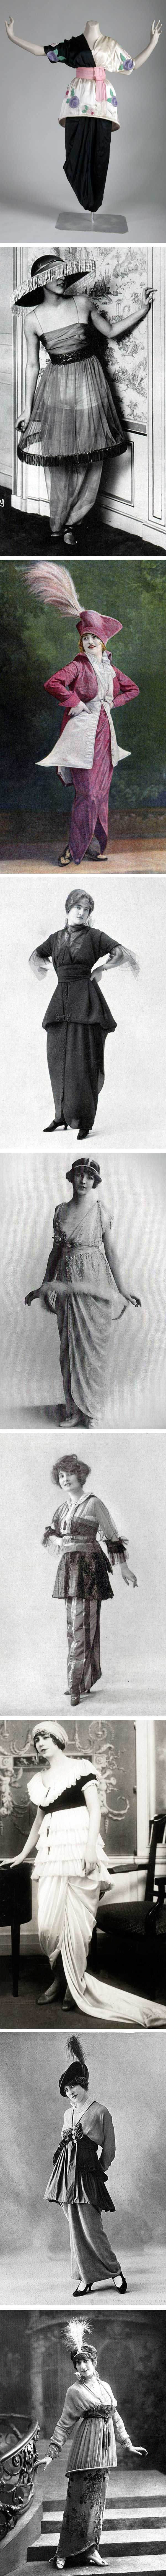 "Paul Poiret popularized the ""lampshade"" dress in 1913. Other designers then jumped on the bandwagon. From top to bottom: Poiret, Poiret, Paquin, Jenny, Abat-Jour, Premet, Poiret, Beer, and Laferrière."